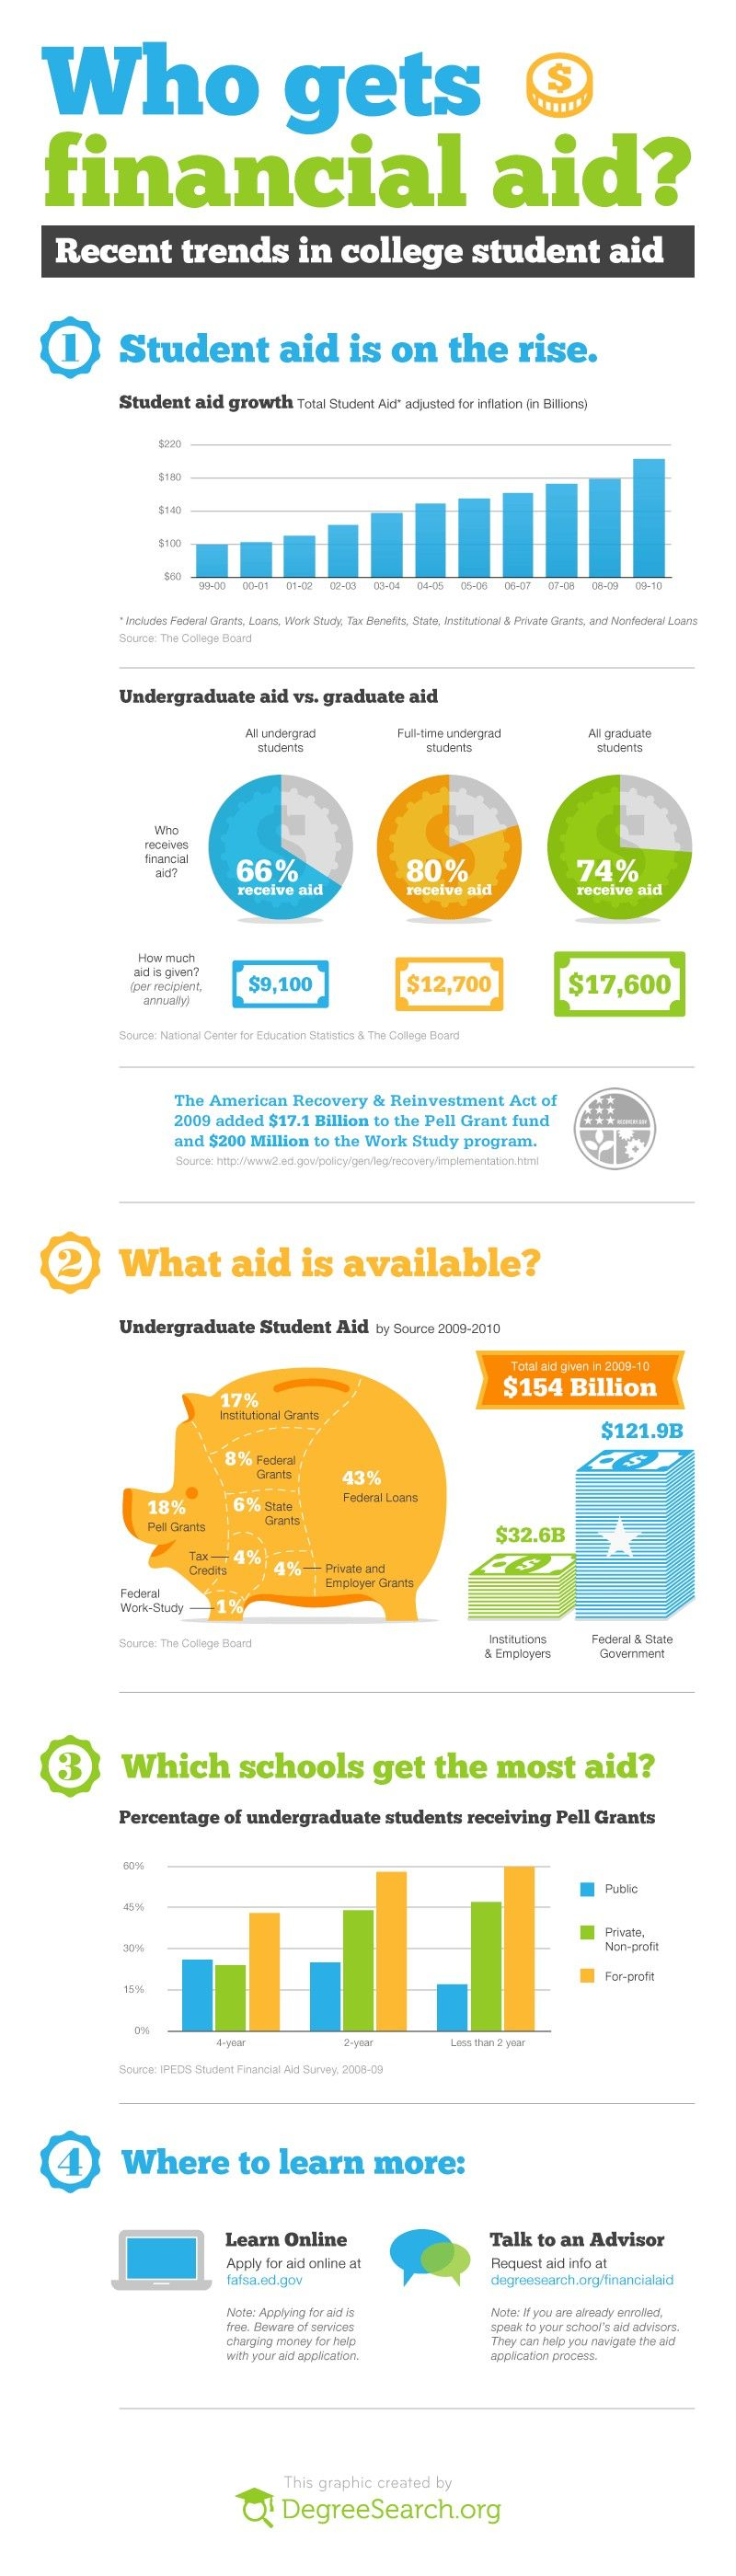 Student Aid is on the Rise Grants for college, Financial